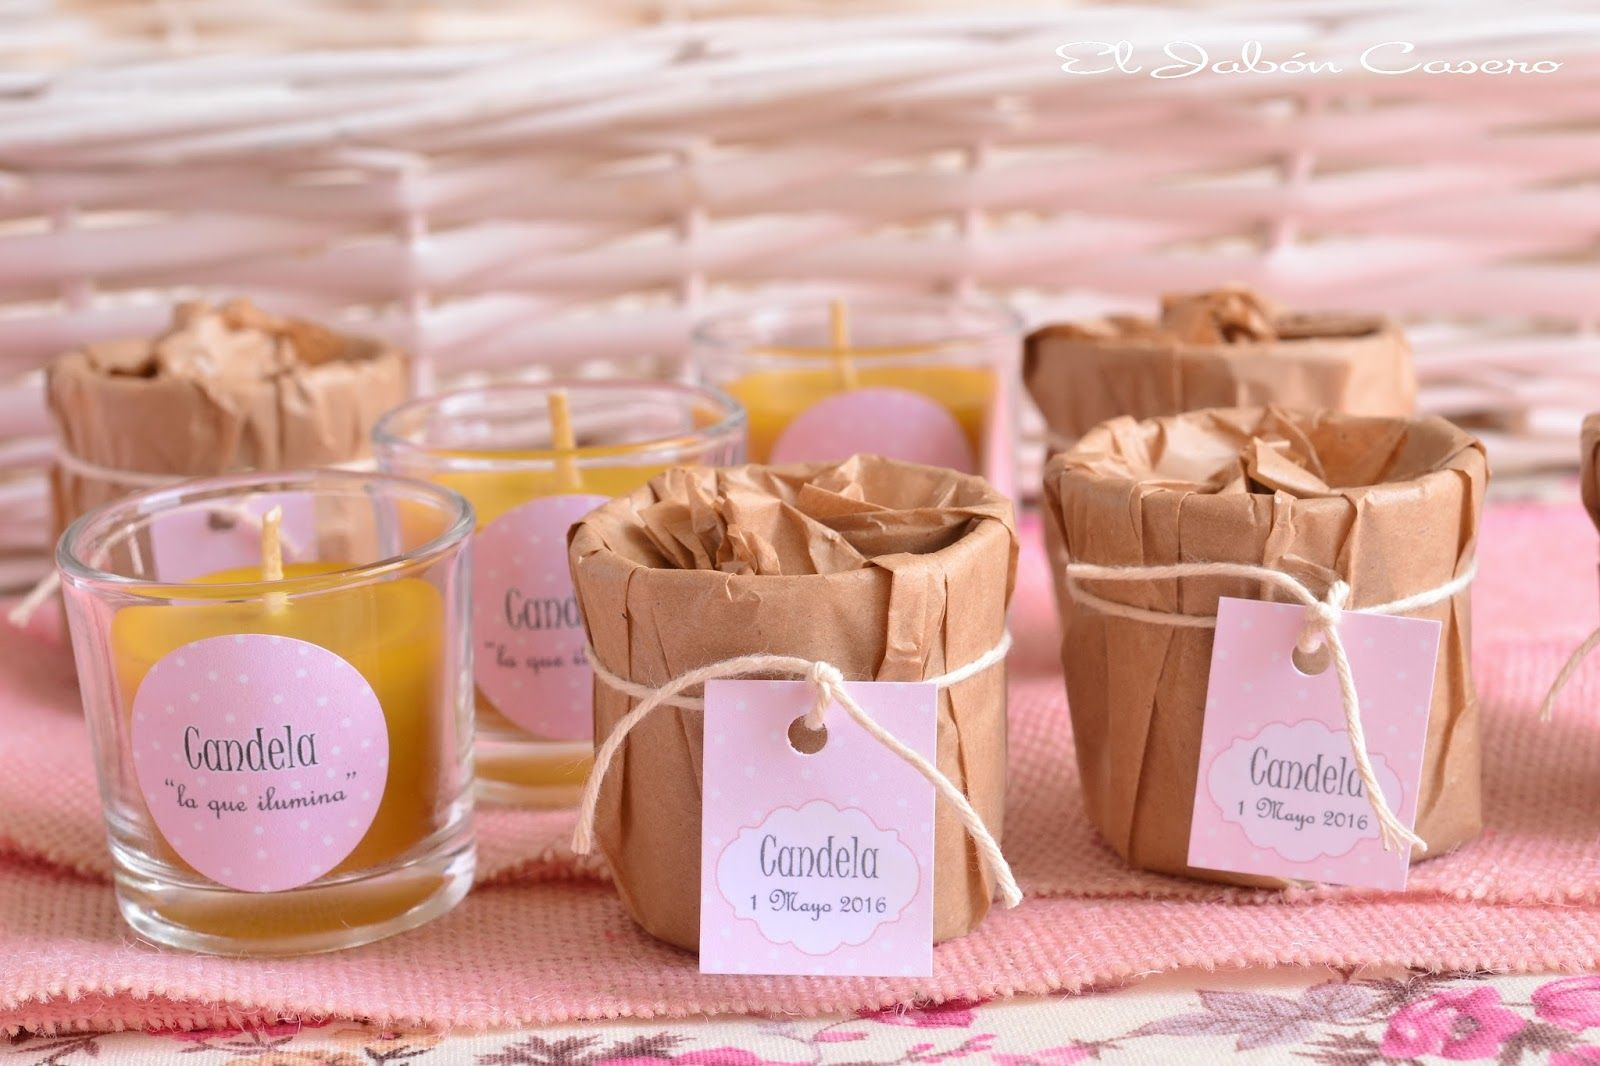 Pin by Kari on souvenirs | Pinterest | Communion favors and Communion